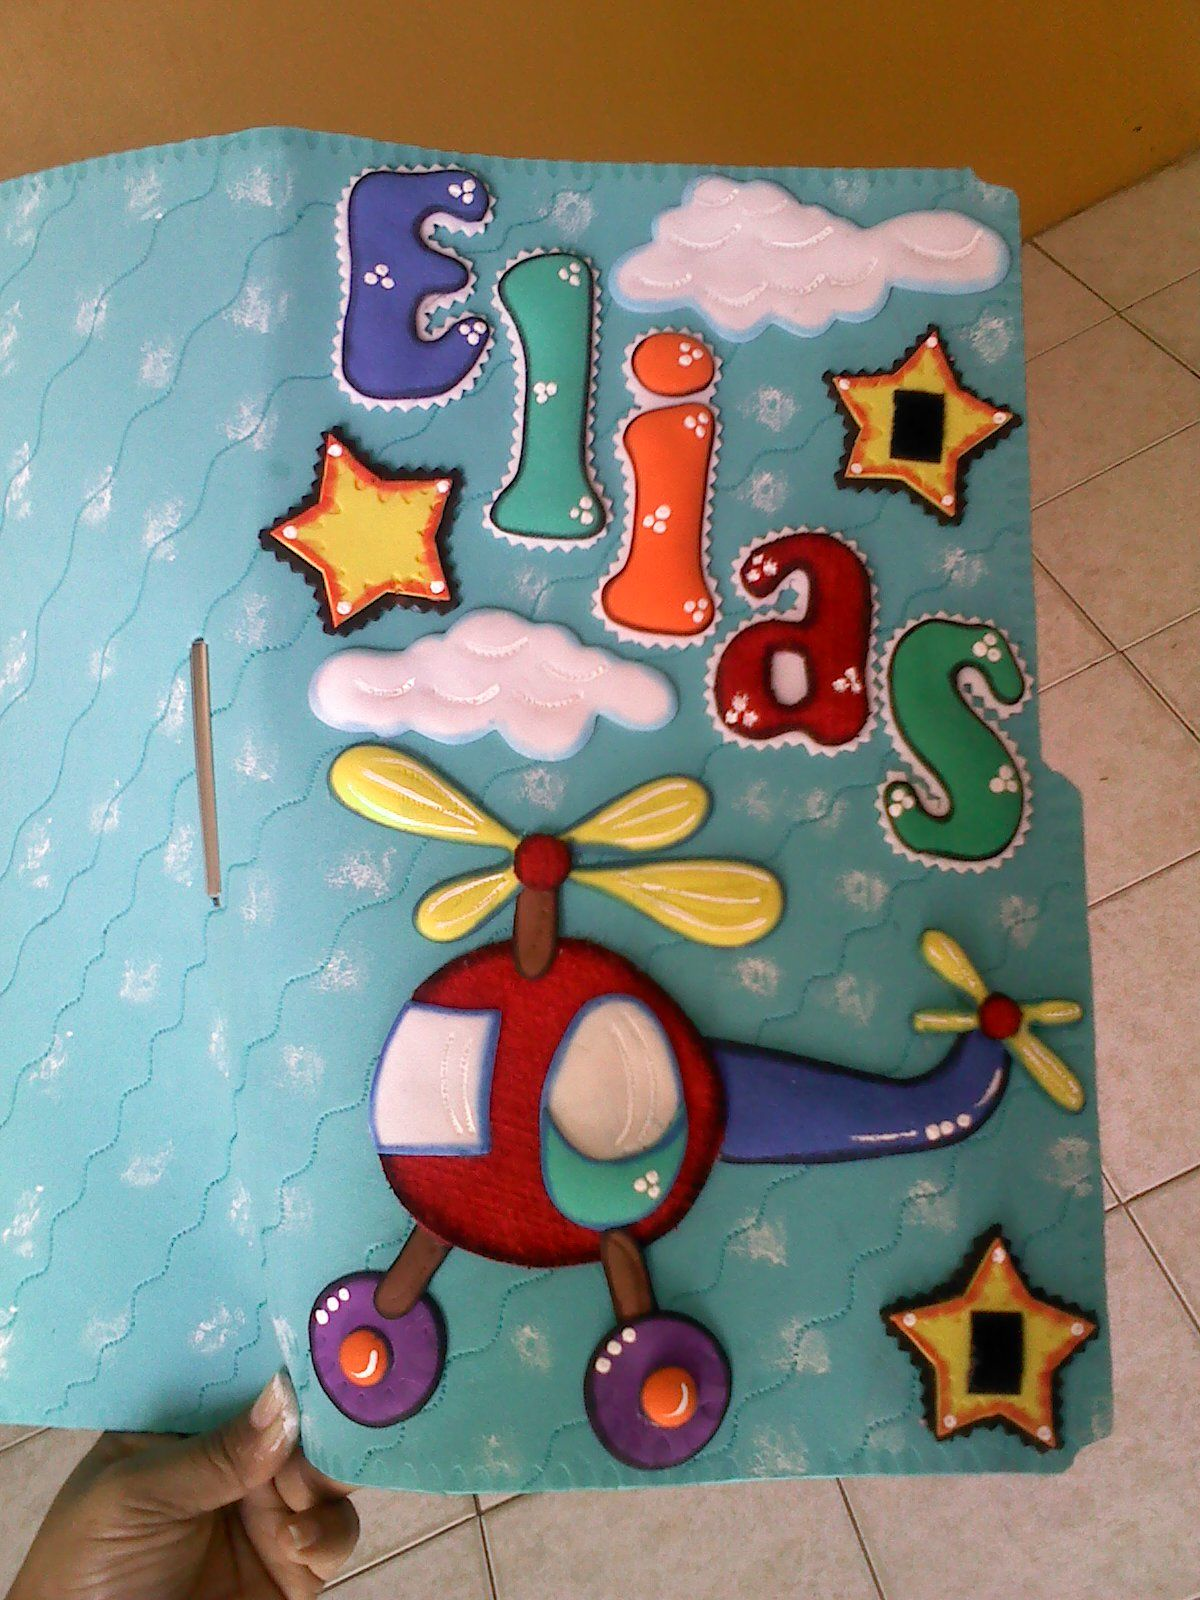 Como Decorar Una Carpeta Para Niños Carpeta Decorada Para Control Maternal Niño Folders Crafts For